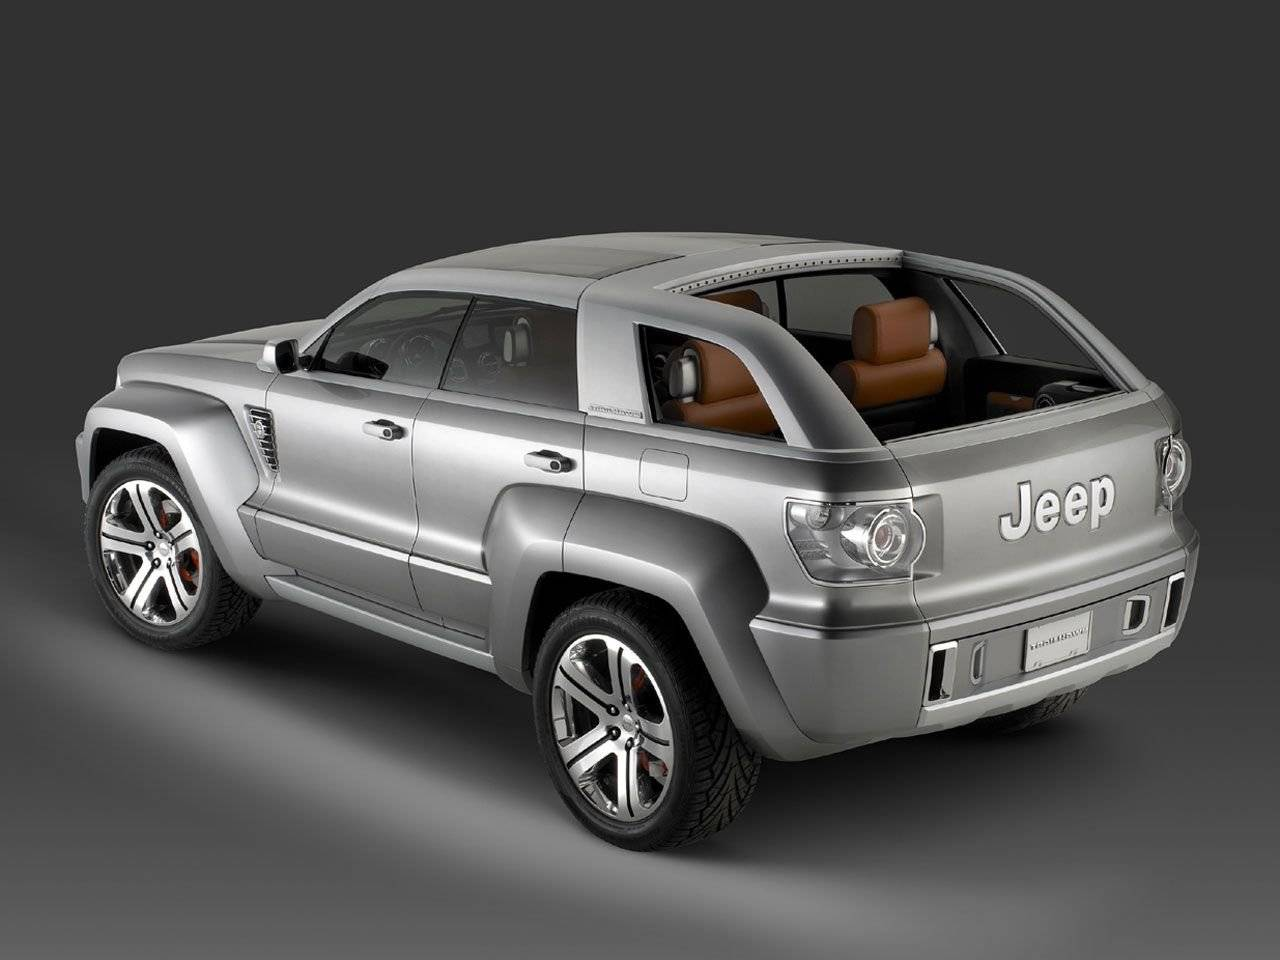 Jeep on 2016 Jeep Renegade Suv